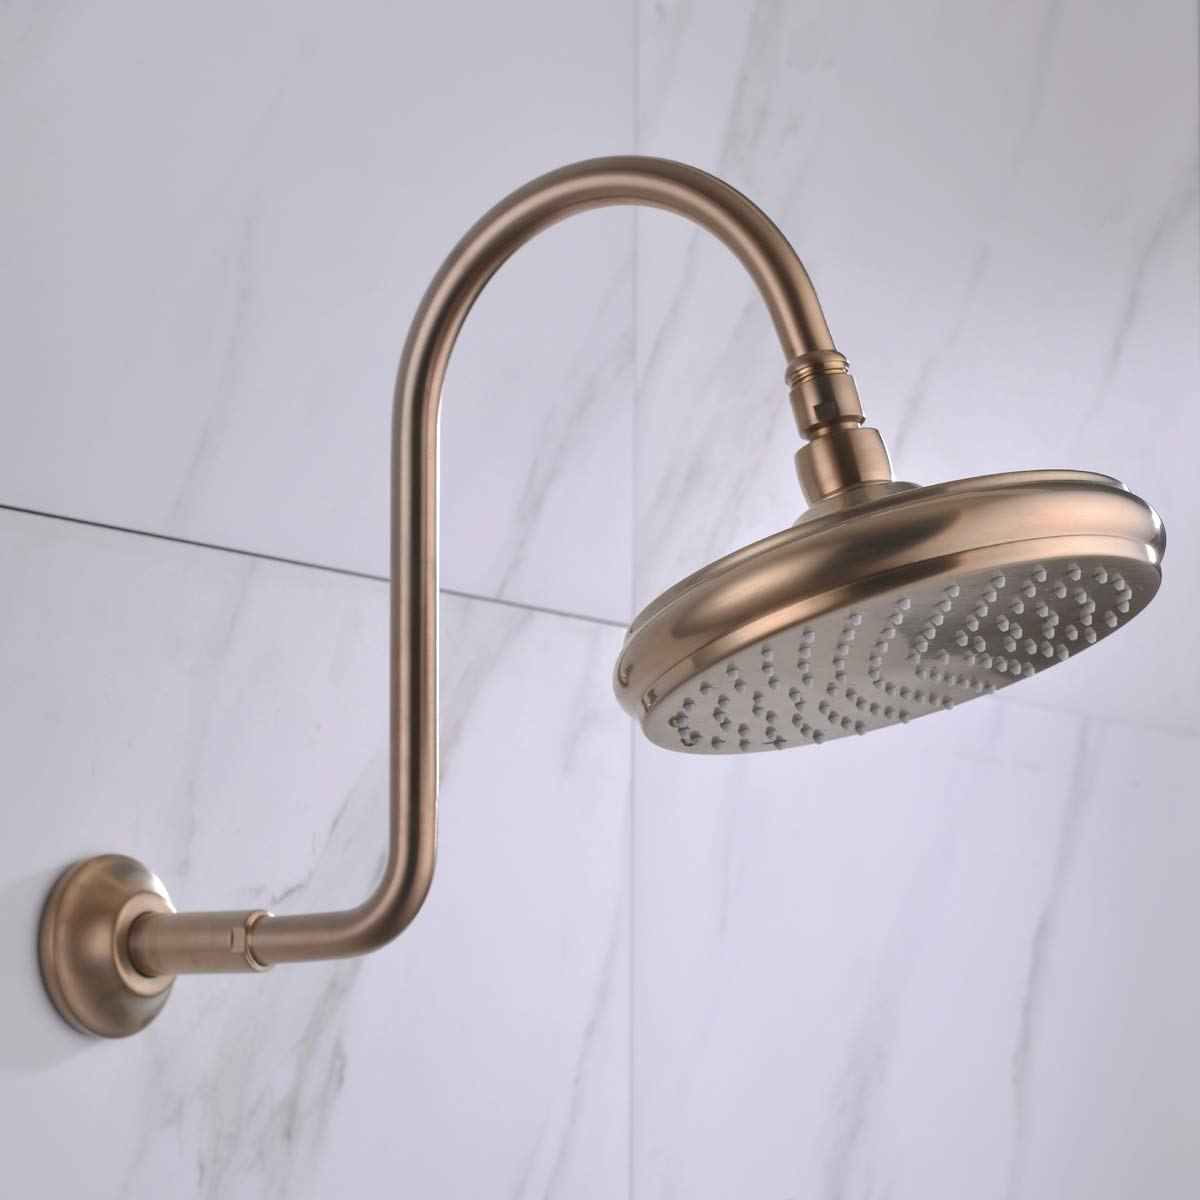 TRUSTMI Brass S Shaped Shower Head Extension Height Arm with Flange Brushed Gold